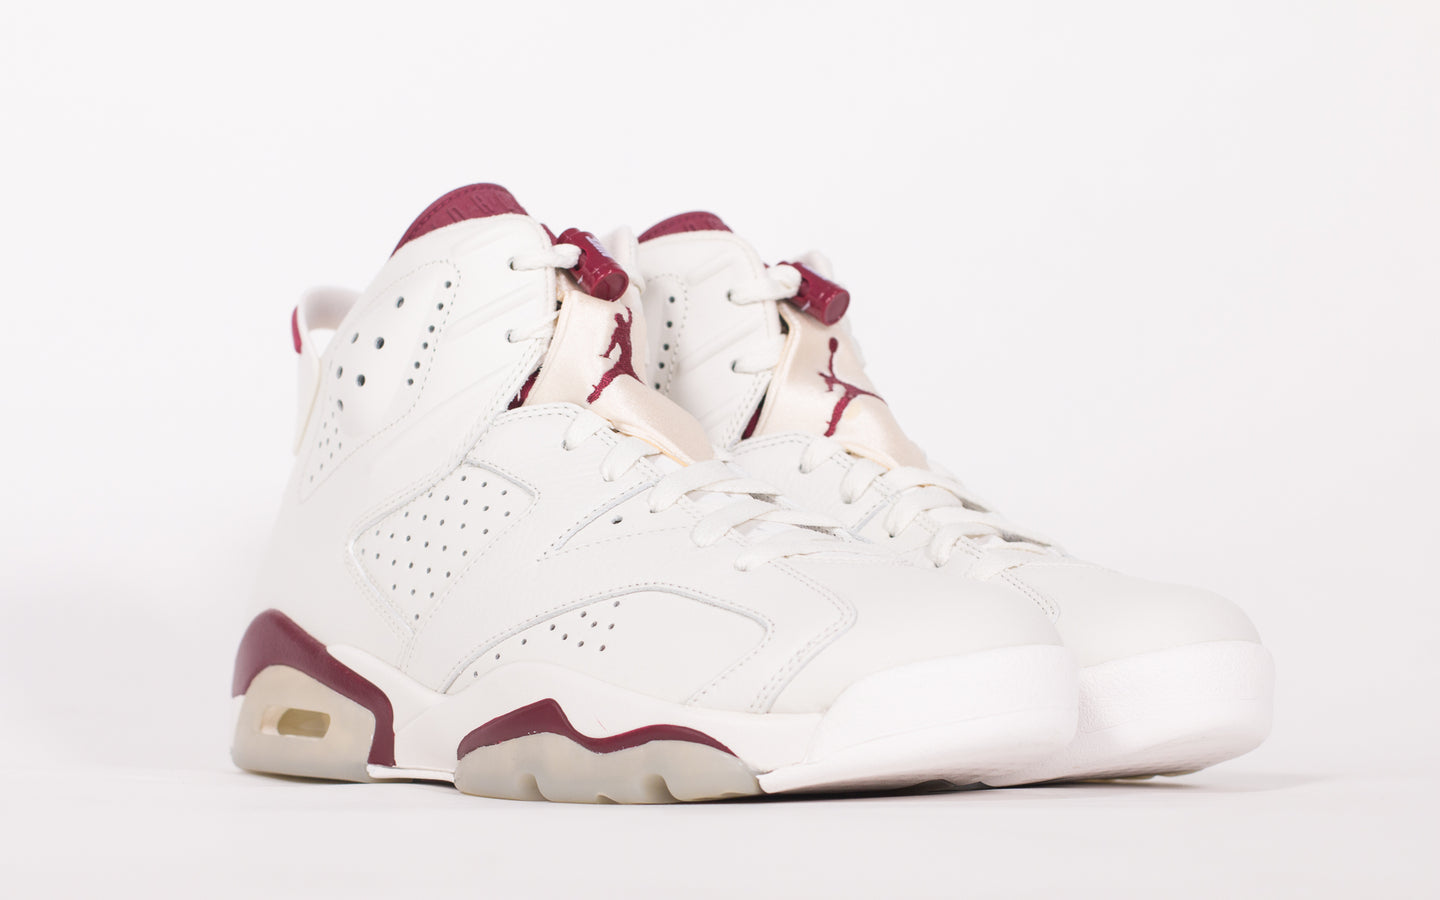 pushas-Nike-Air-Jordan-6-Maroon-2015